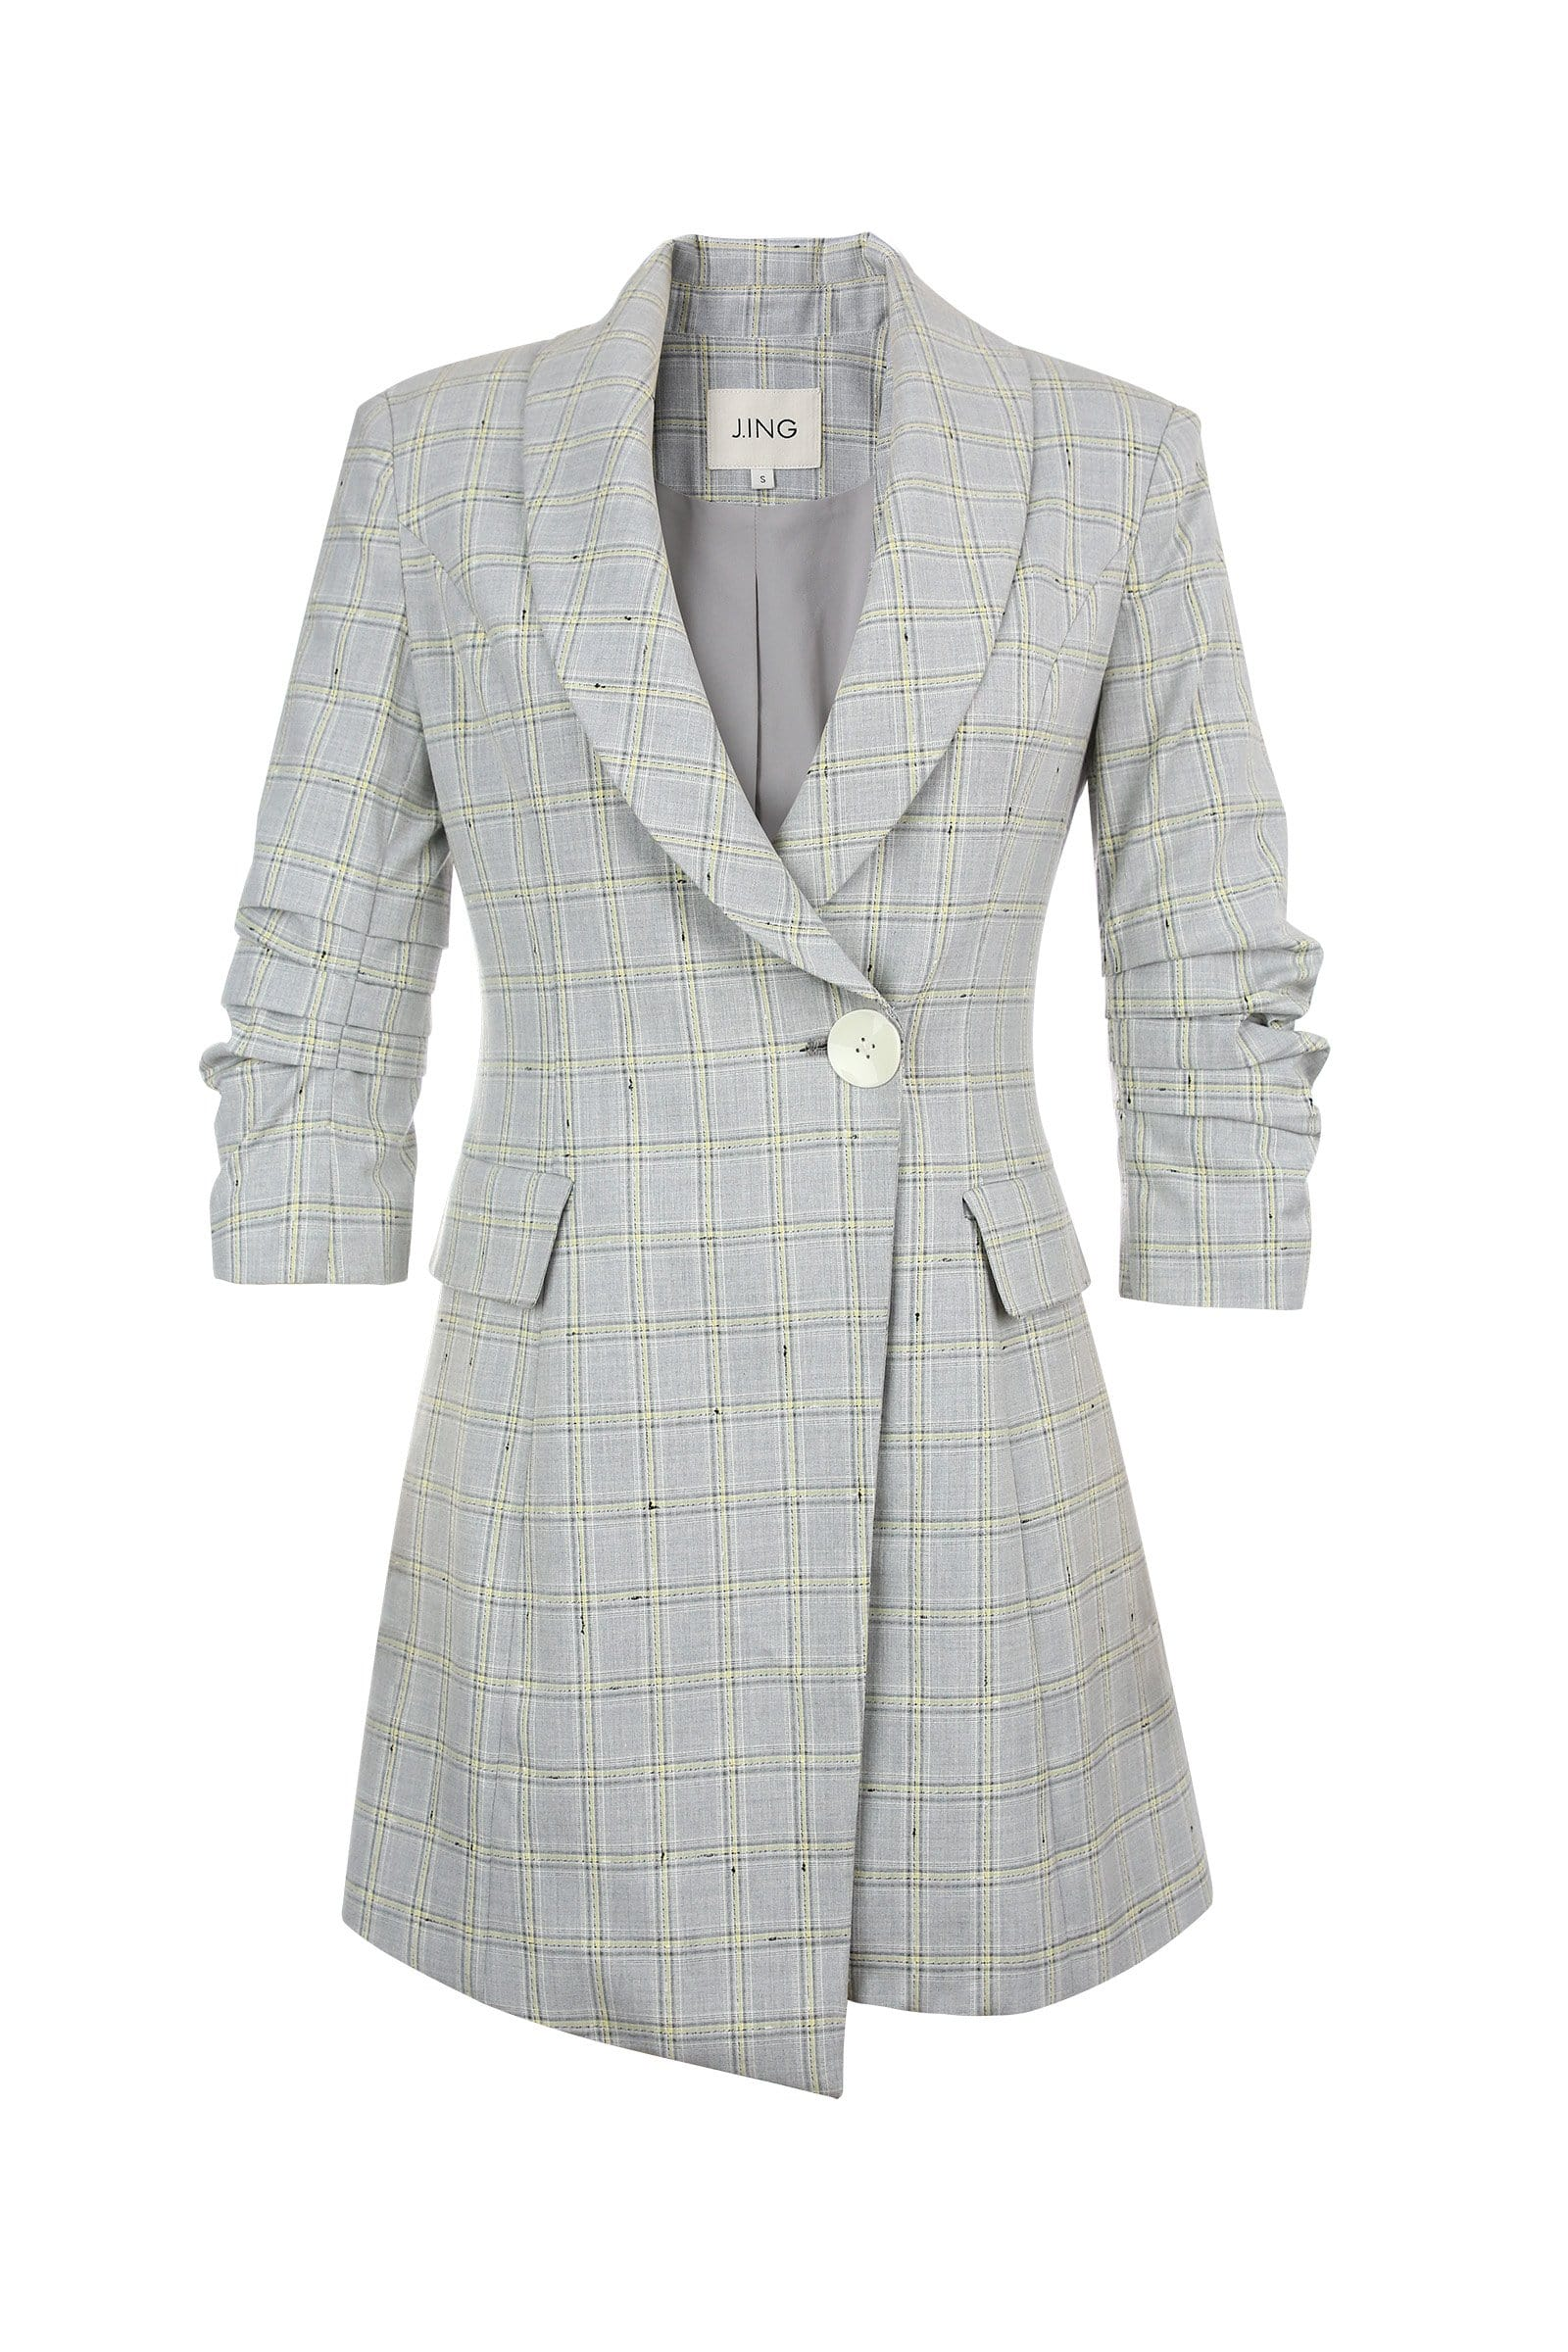 Avery Grey Blazer Mini Dress